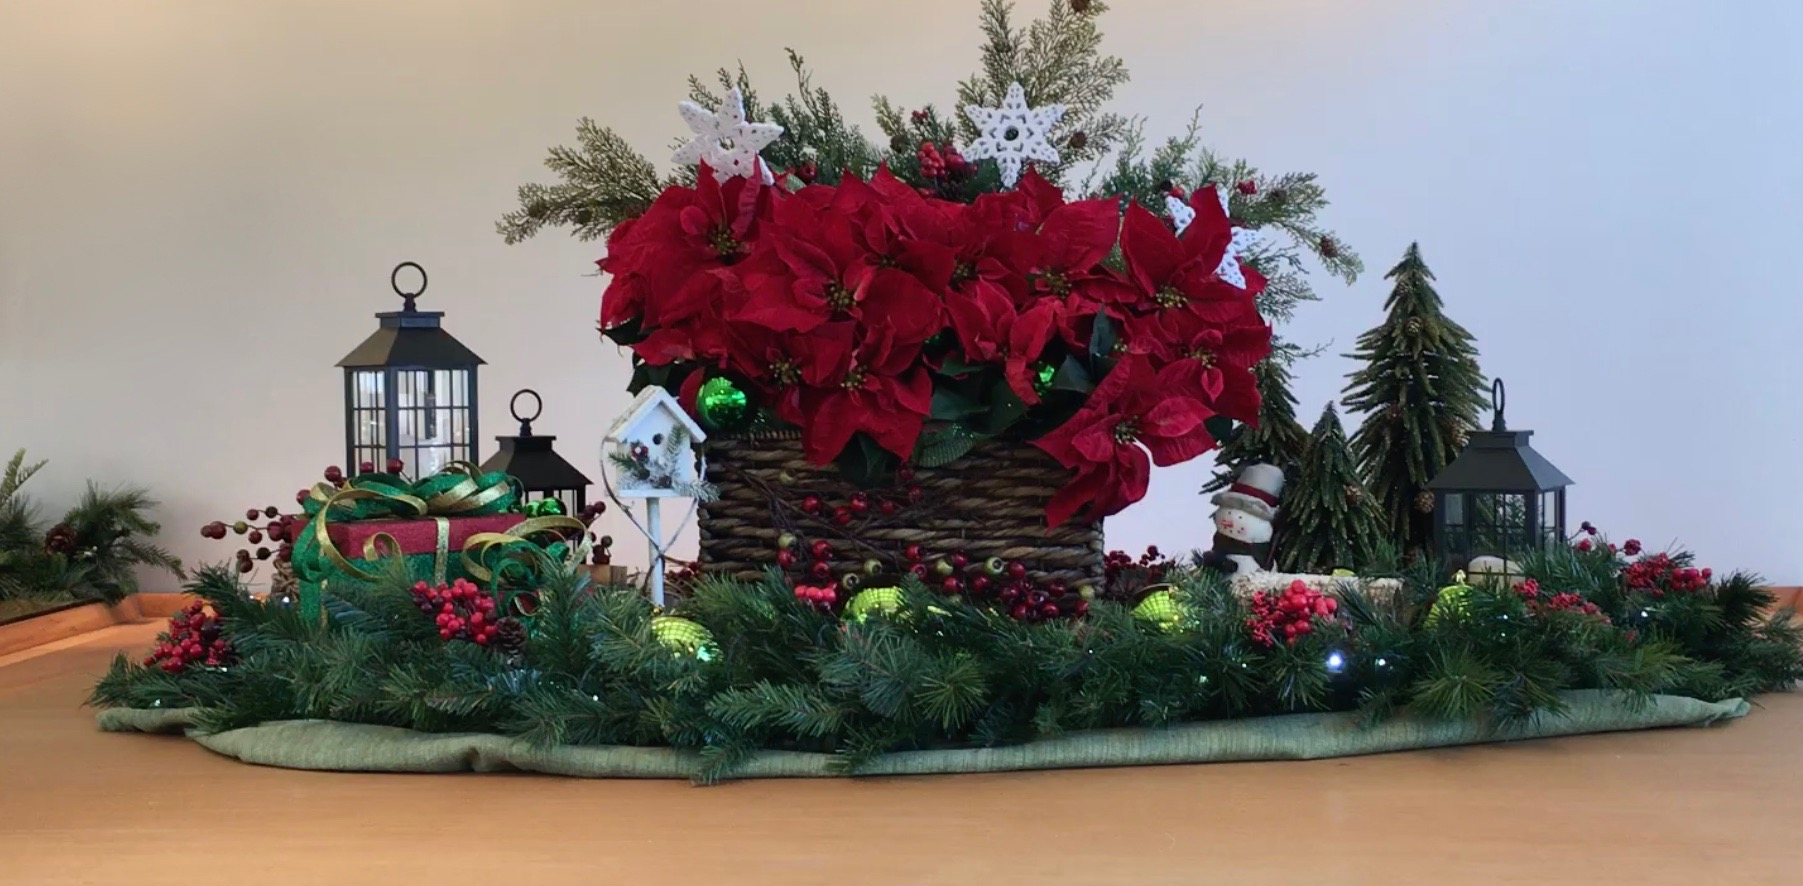 Best Christmas Decorations In Northern Nj : Holiday decor in northern new jersey plant pros